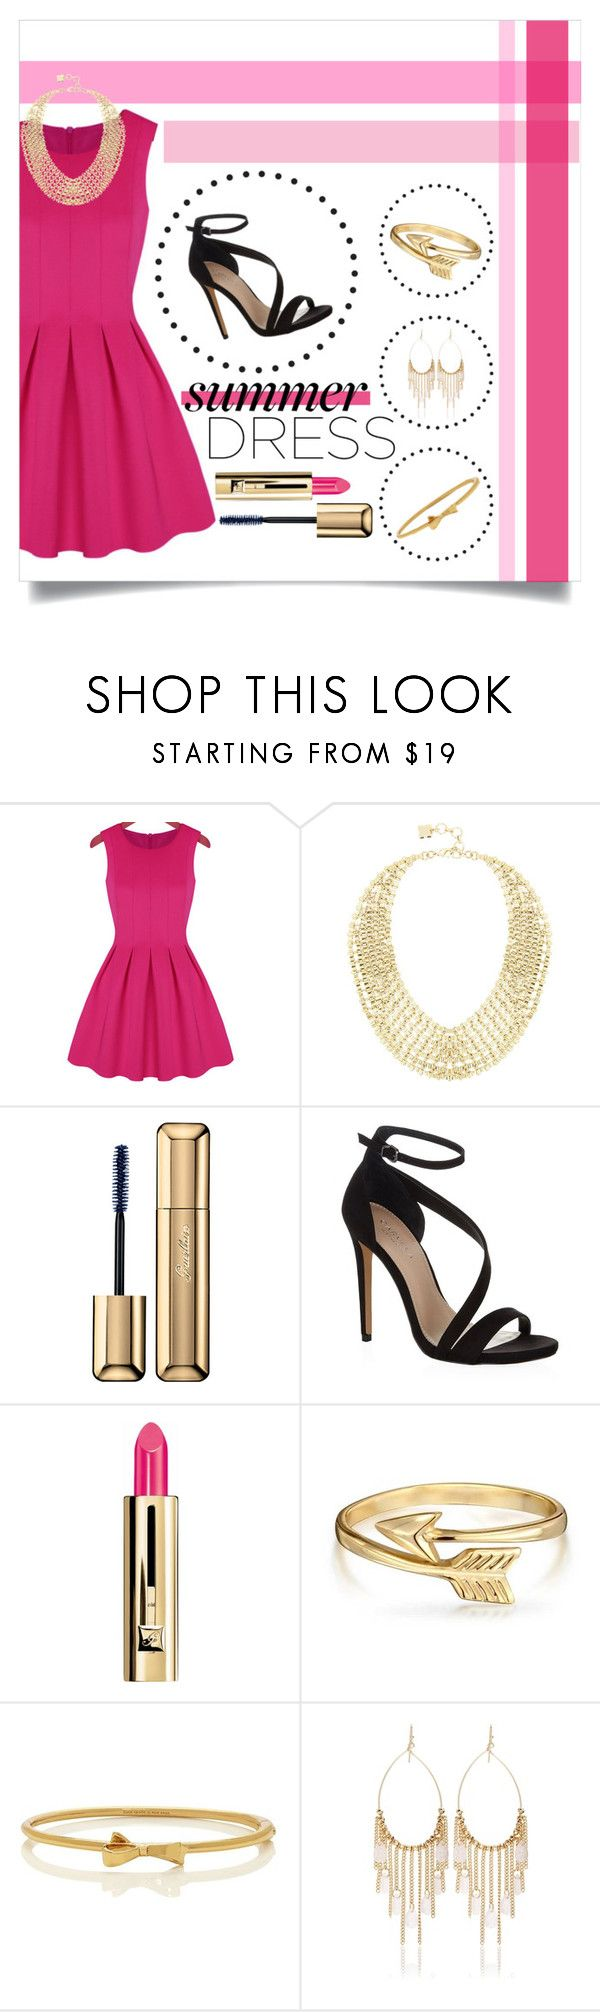 """""""Summer Dress"""" by mormon-girl ❤ liked on Polyvore featuring BCBGMAXAZRIA, Guerlain, Carvela Kurt Geiger, Bling Jewelry, Kate Spade, White House Black Market, contest, Pink, Heels and summerdress"""